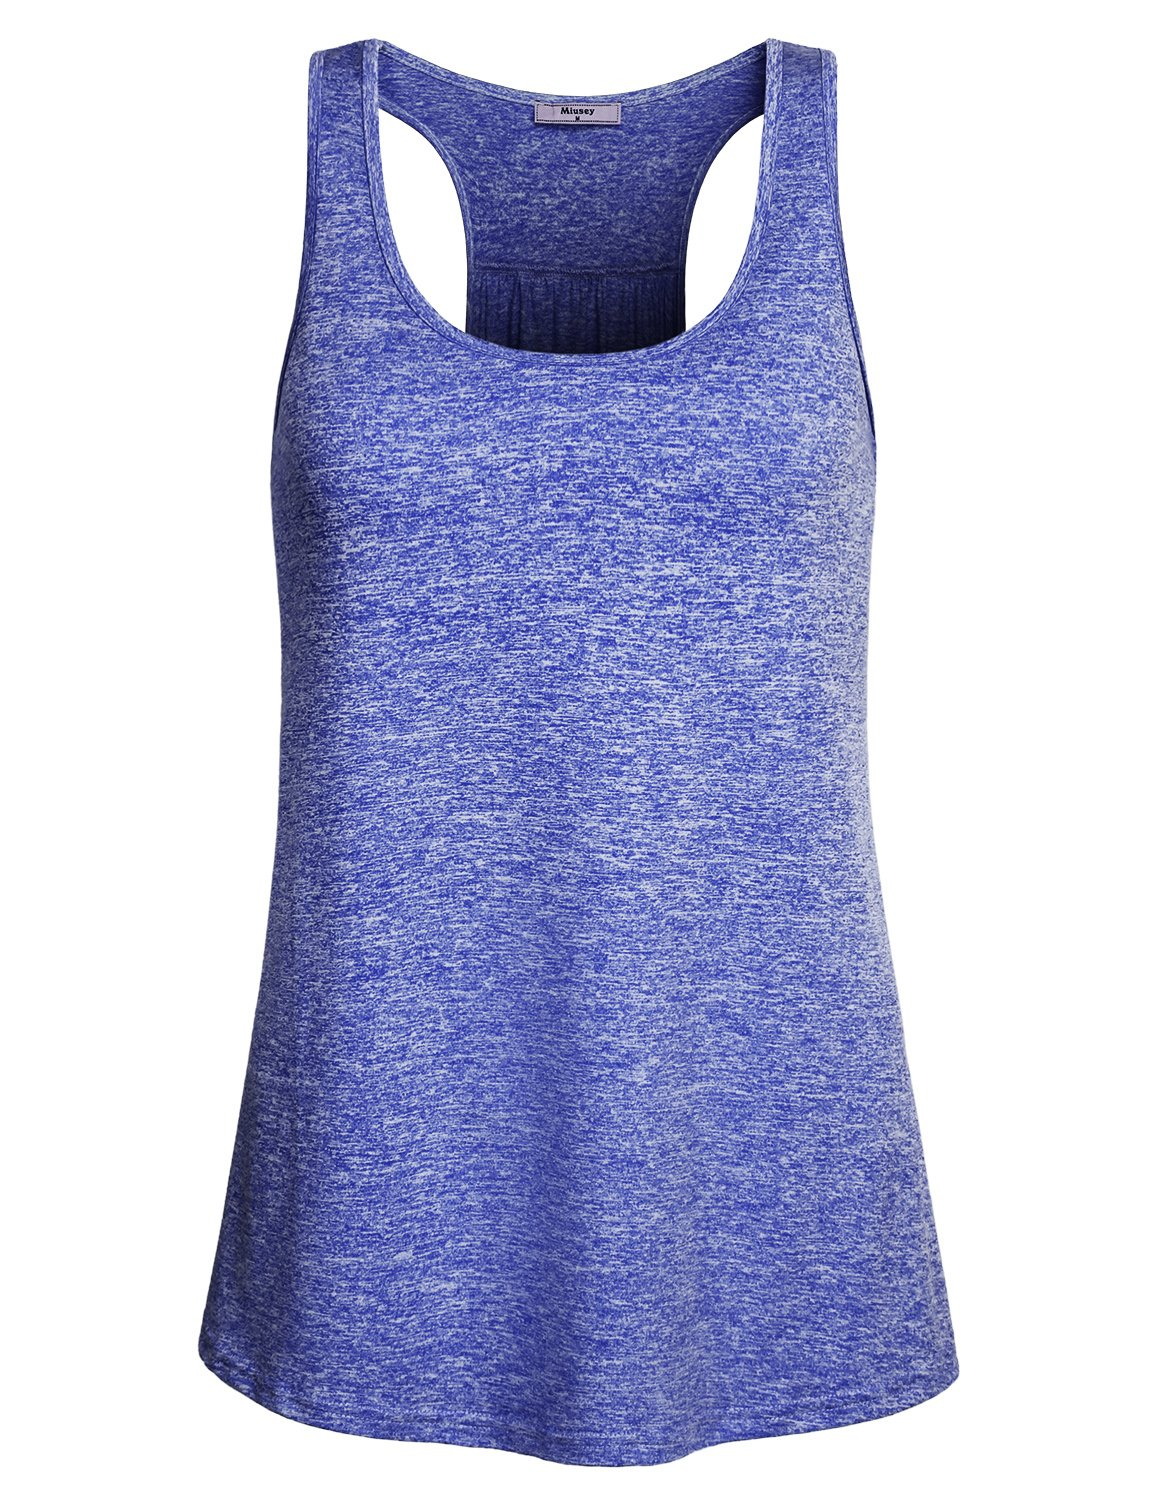 Miusey Tank Tops for Women, Juniors Sleeveless Scoop Neck Activewear Yoga Running Workout Blank Athletic Gym Sports Stretchy Fitness Cozy Vibrant Shirt Blue M